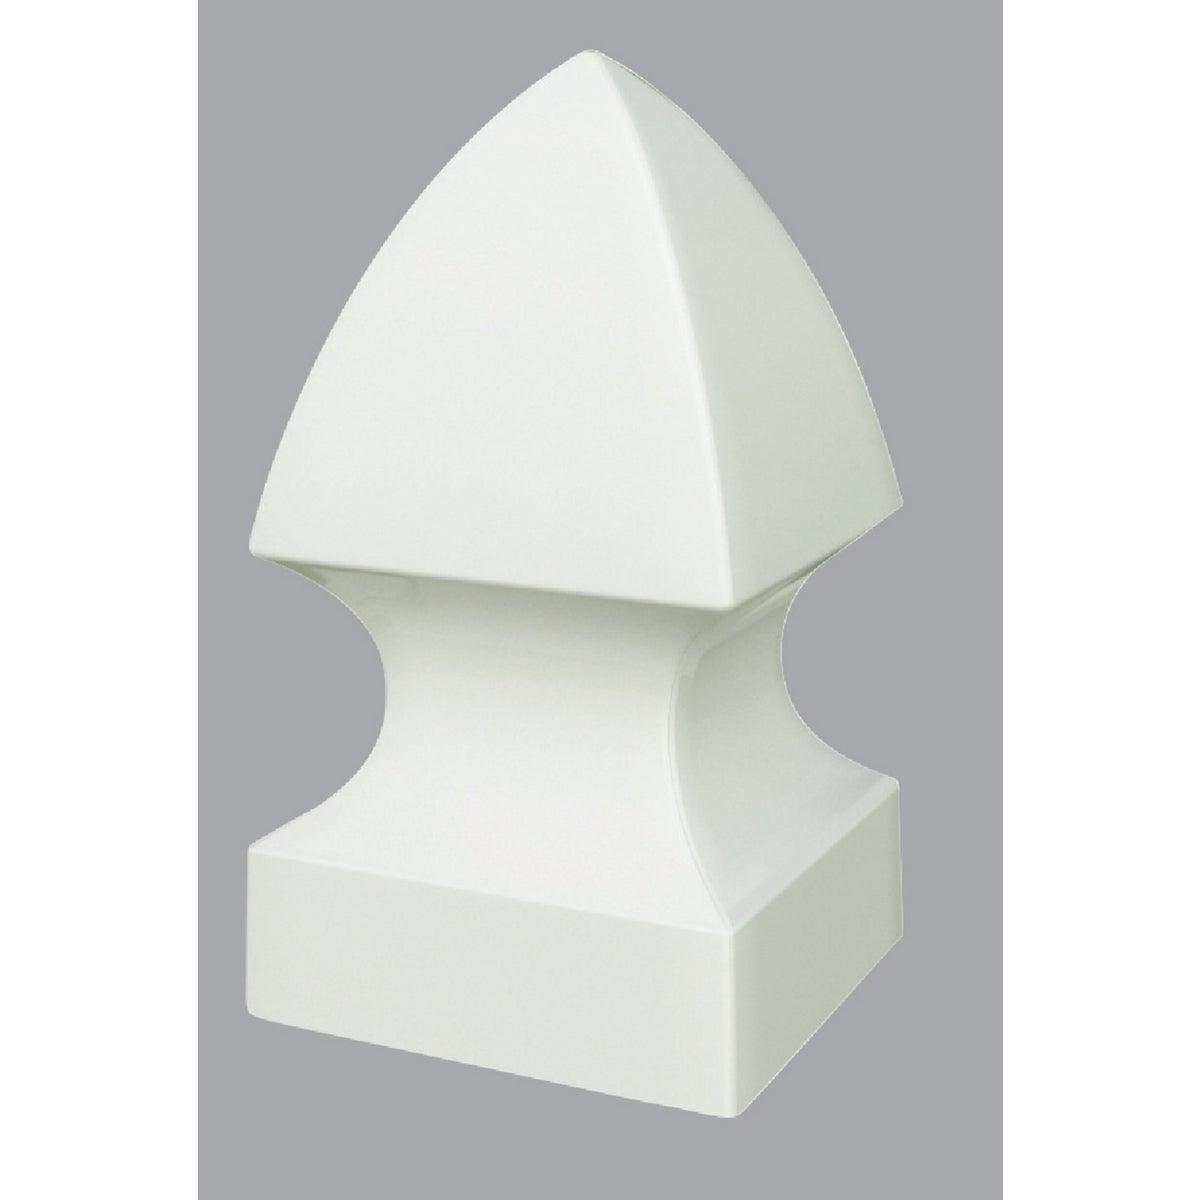 5X5 VNL GOTHIC POST CAP - 127603 by Ufpi Lbr & Treated